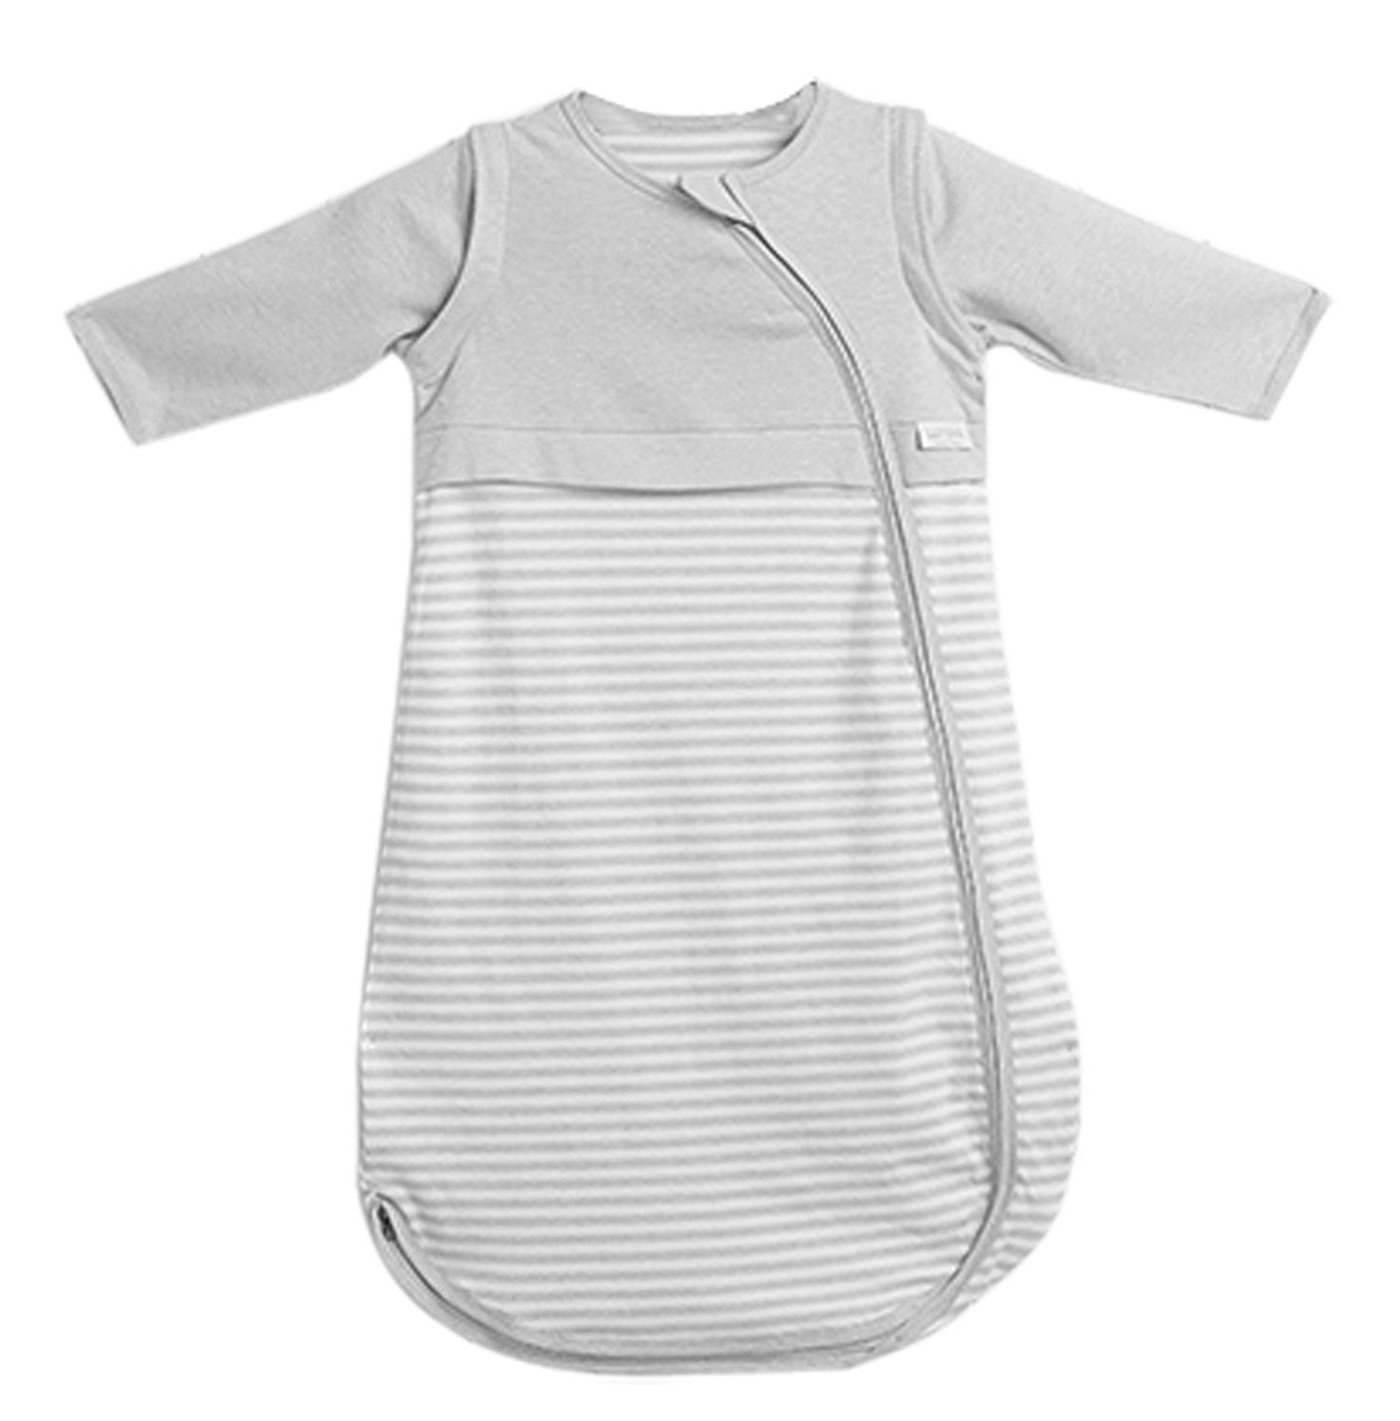 LETTAS Baby Girls 100% Cotton Stripe Removable Sleeve Sleeping Bag 0.5 Tog - Soft Wearable Blanket Grey (12-24 Months)